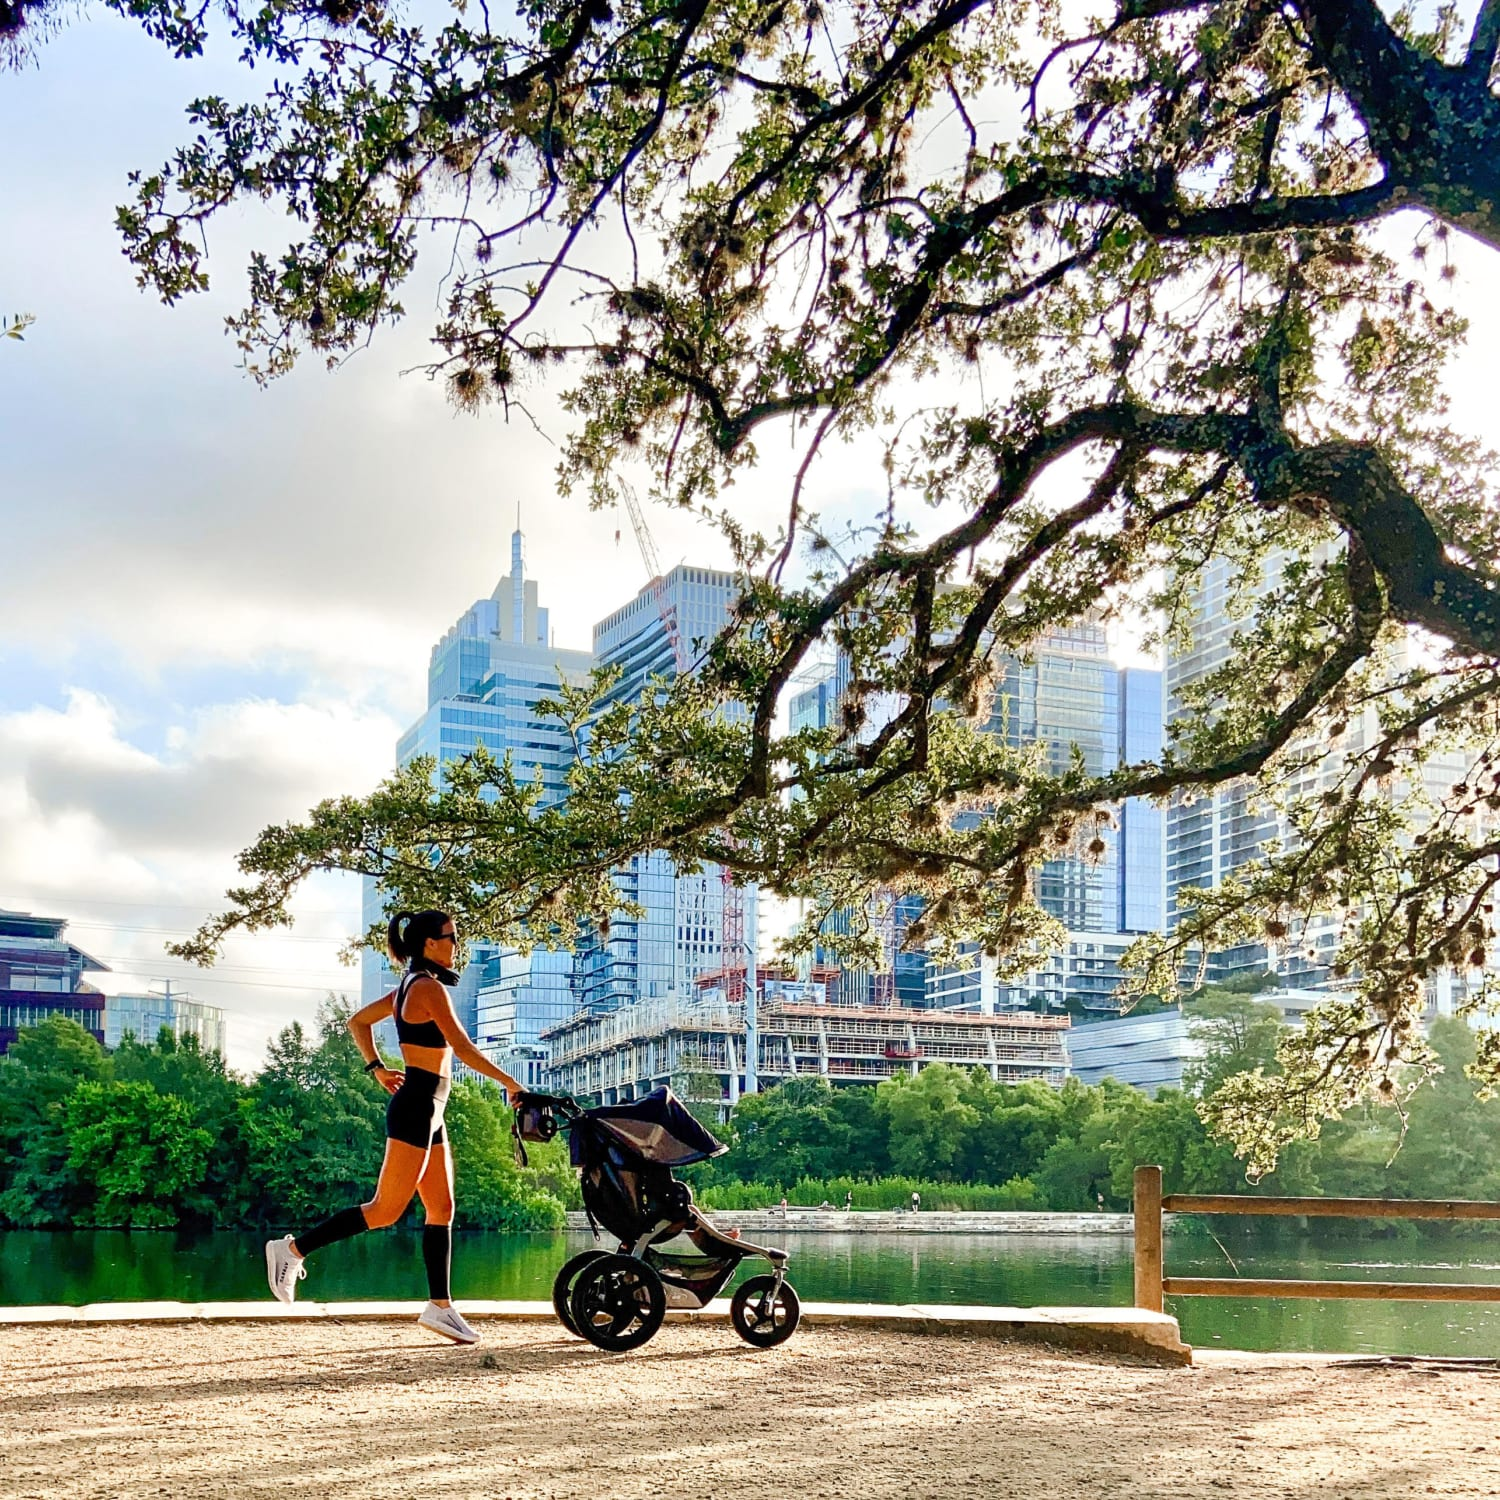 Image of Samantha, a runner and a mother, running with a stroller on the Town Lake Trail with the Austin skyline in the background. She contributed some of the information in this blog about how to run with a stroller.